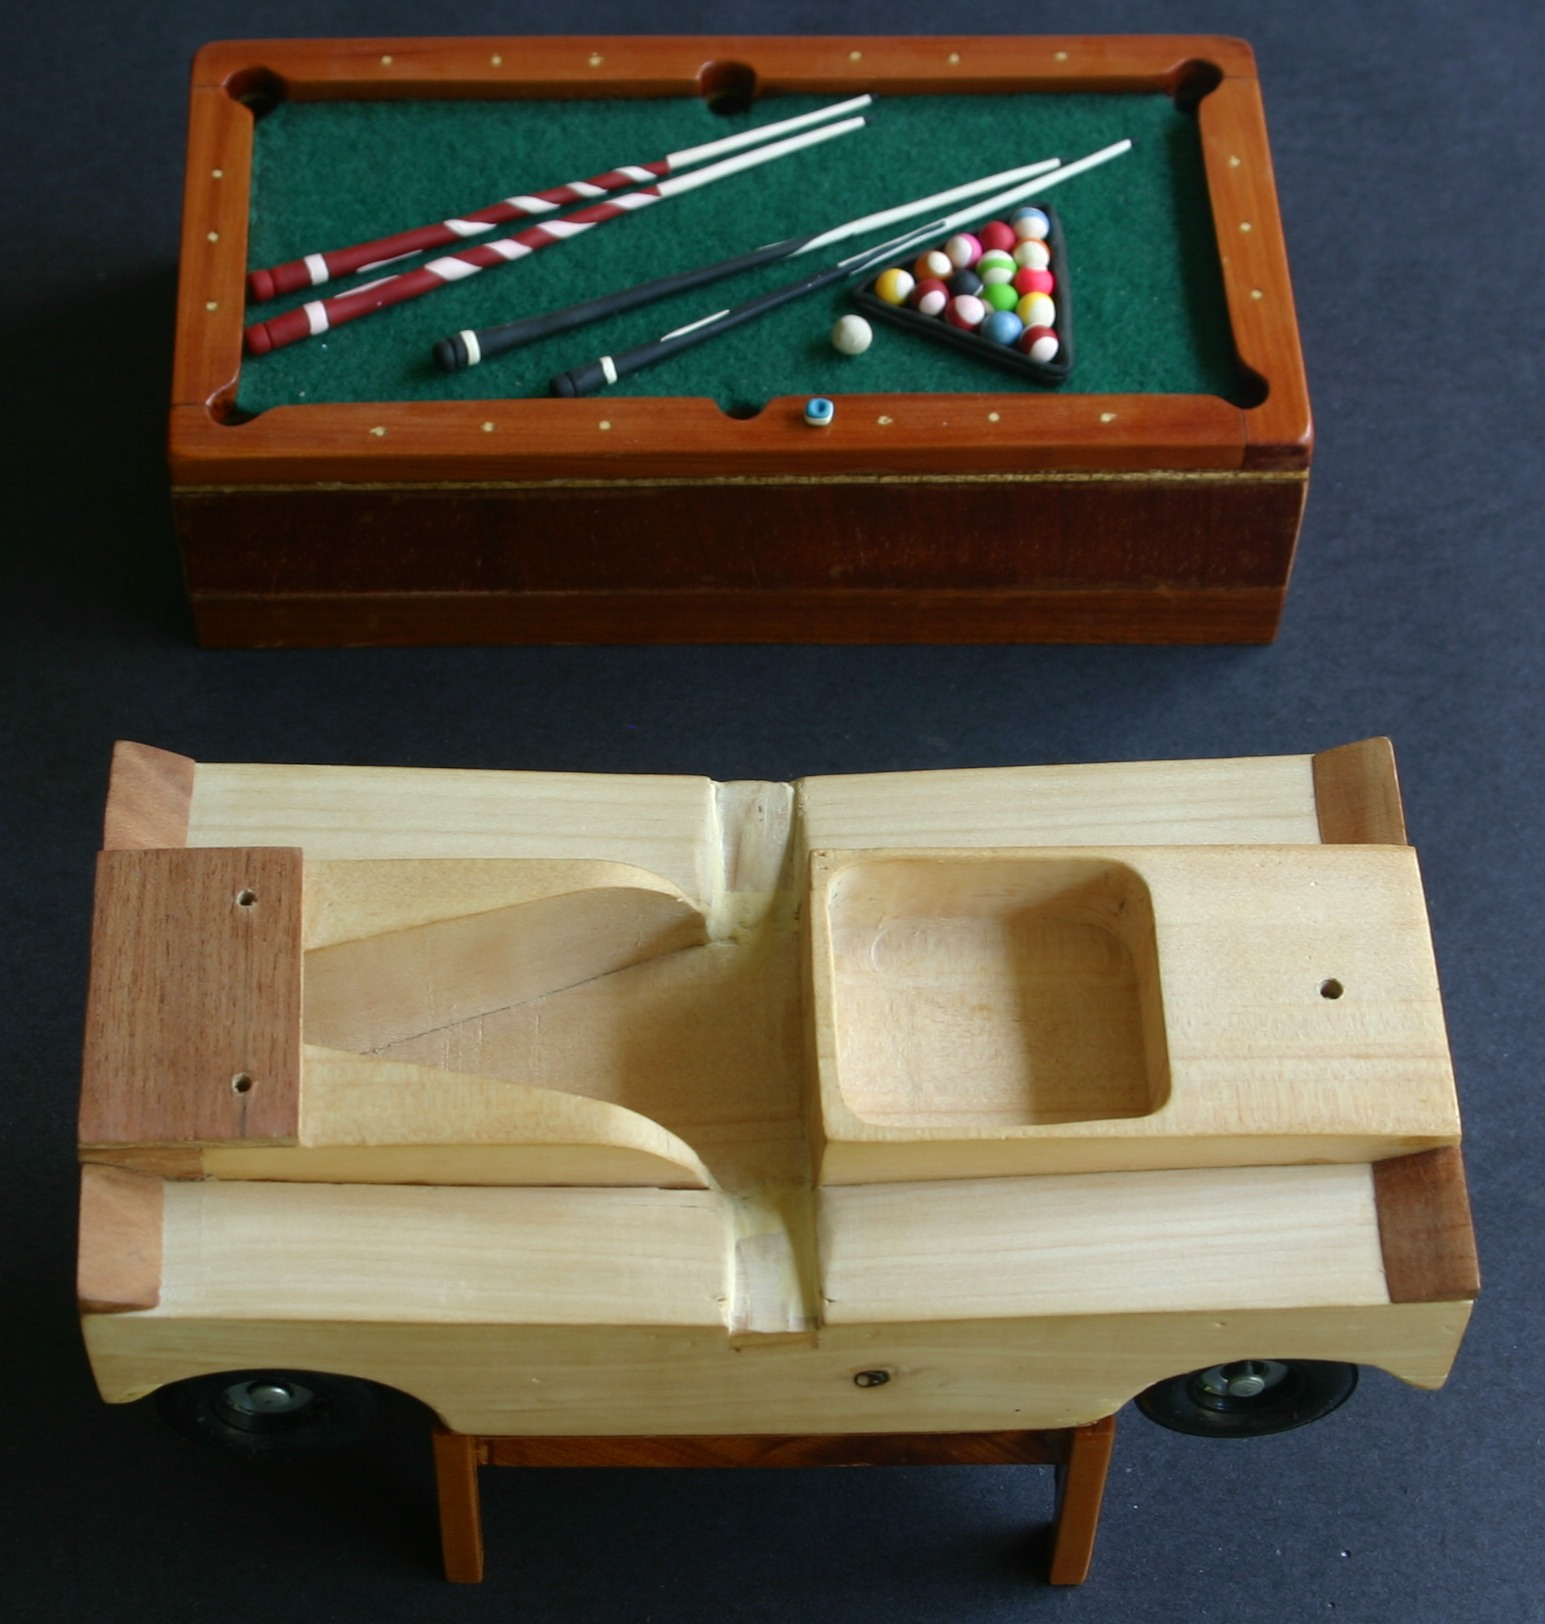 Trendy Pool Table Business Plan With Diy Pool Table.